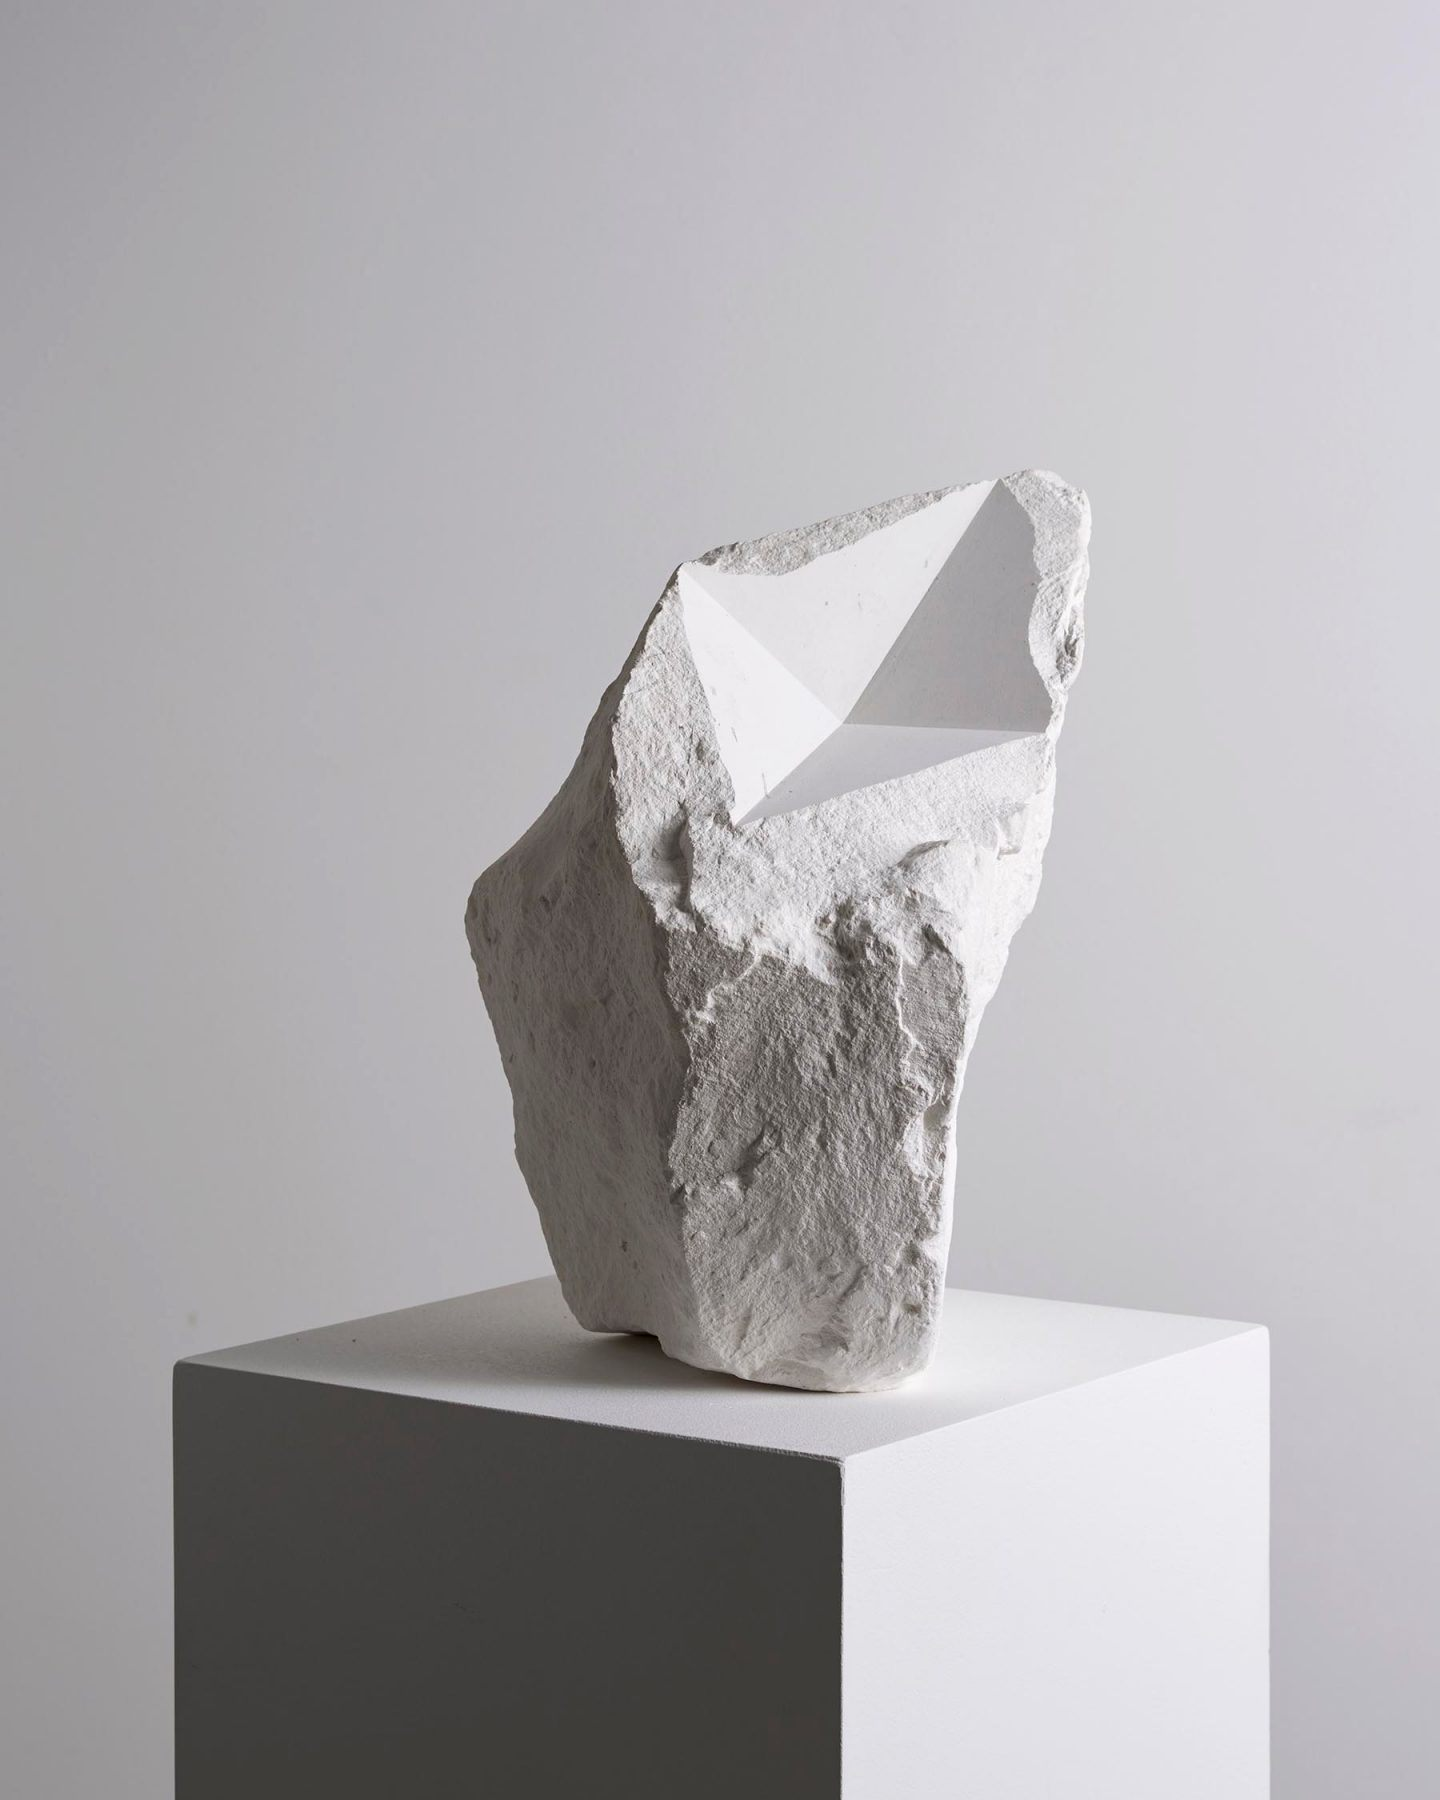 IGNANT-Photography-Darren-Harvey-Regan-The-Erratics-1.1